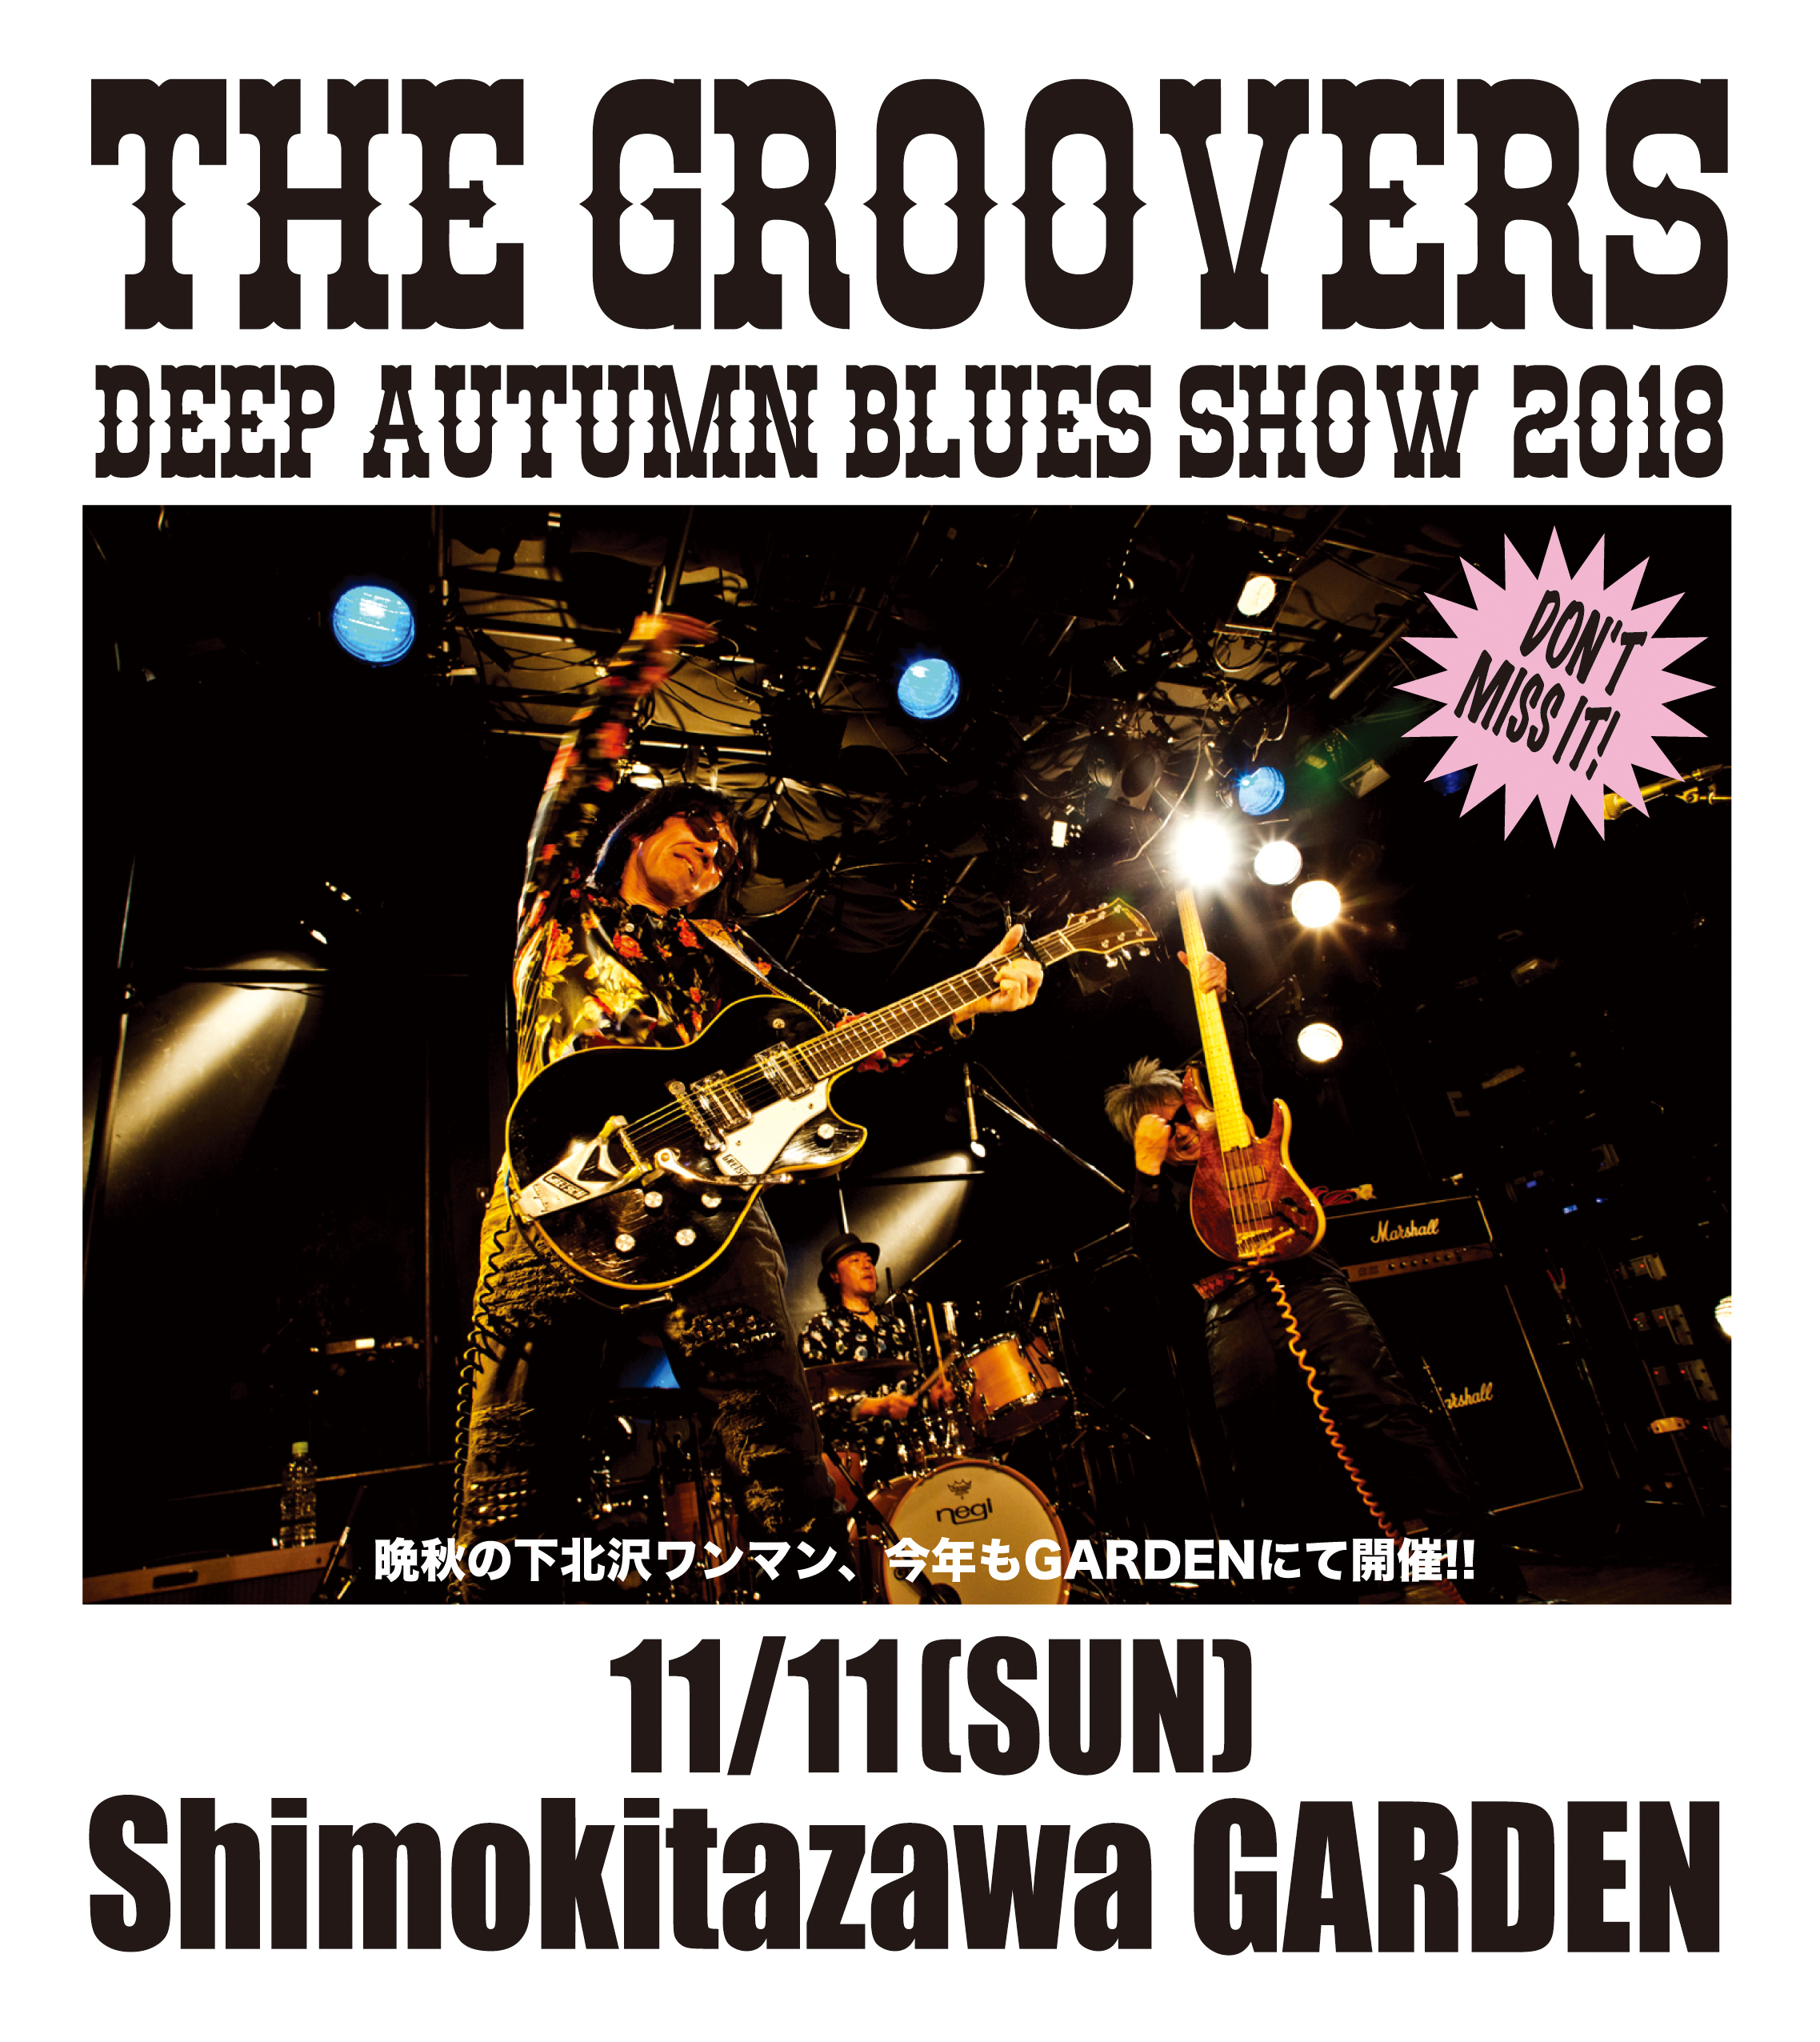 DEEP AUTUMN BLUES SHOW 2018